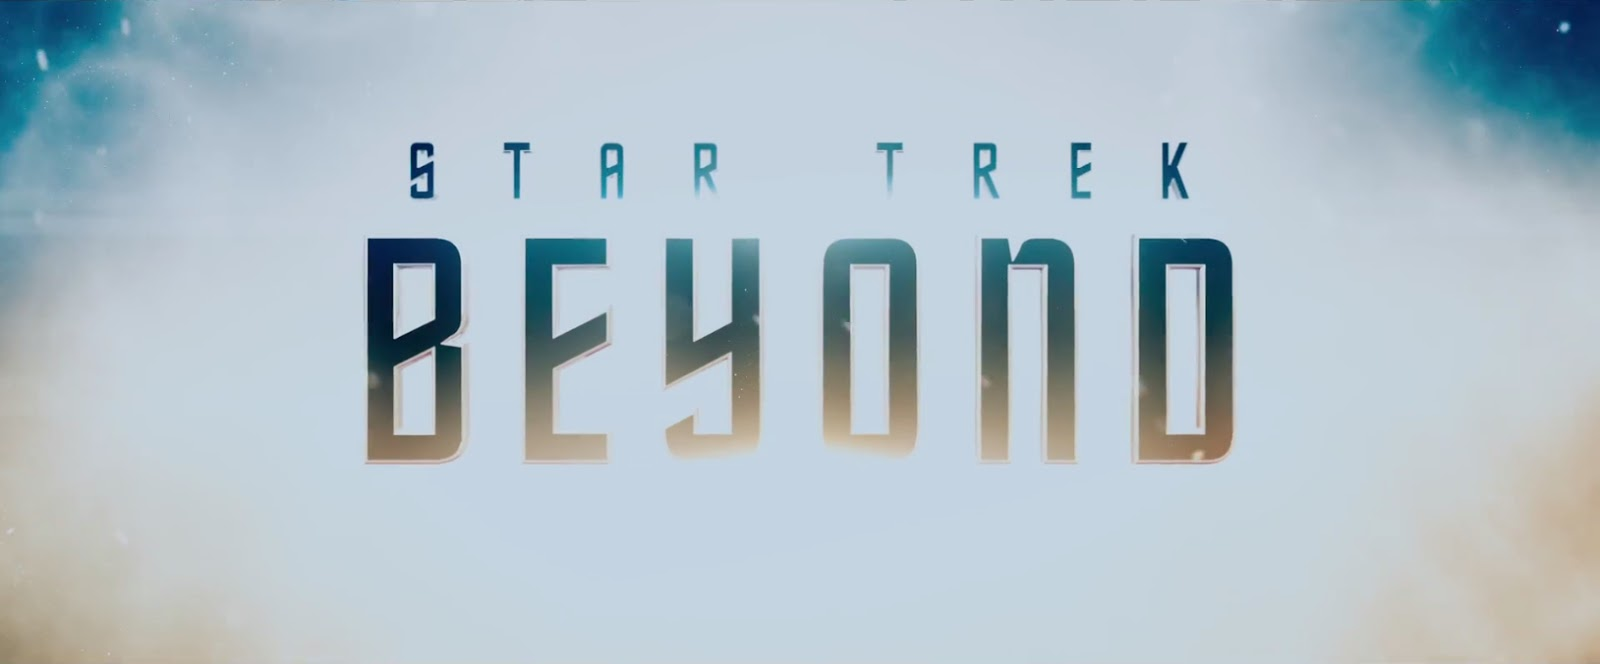 star trek beyond deluxe soundtrack download